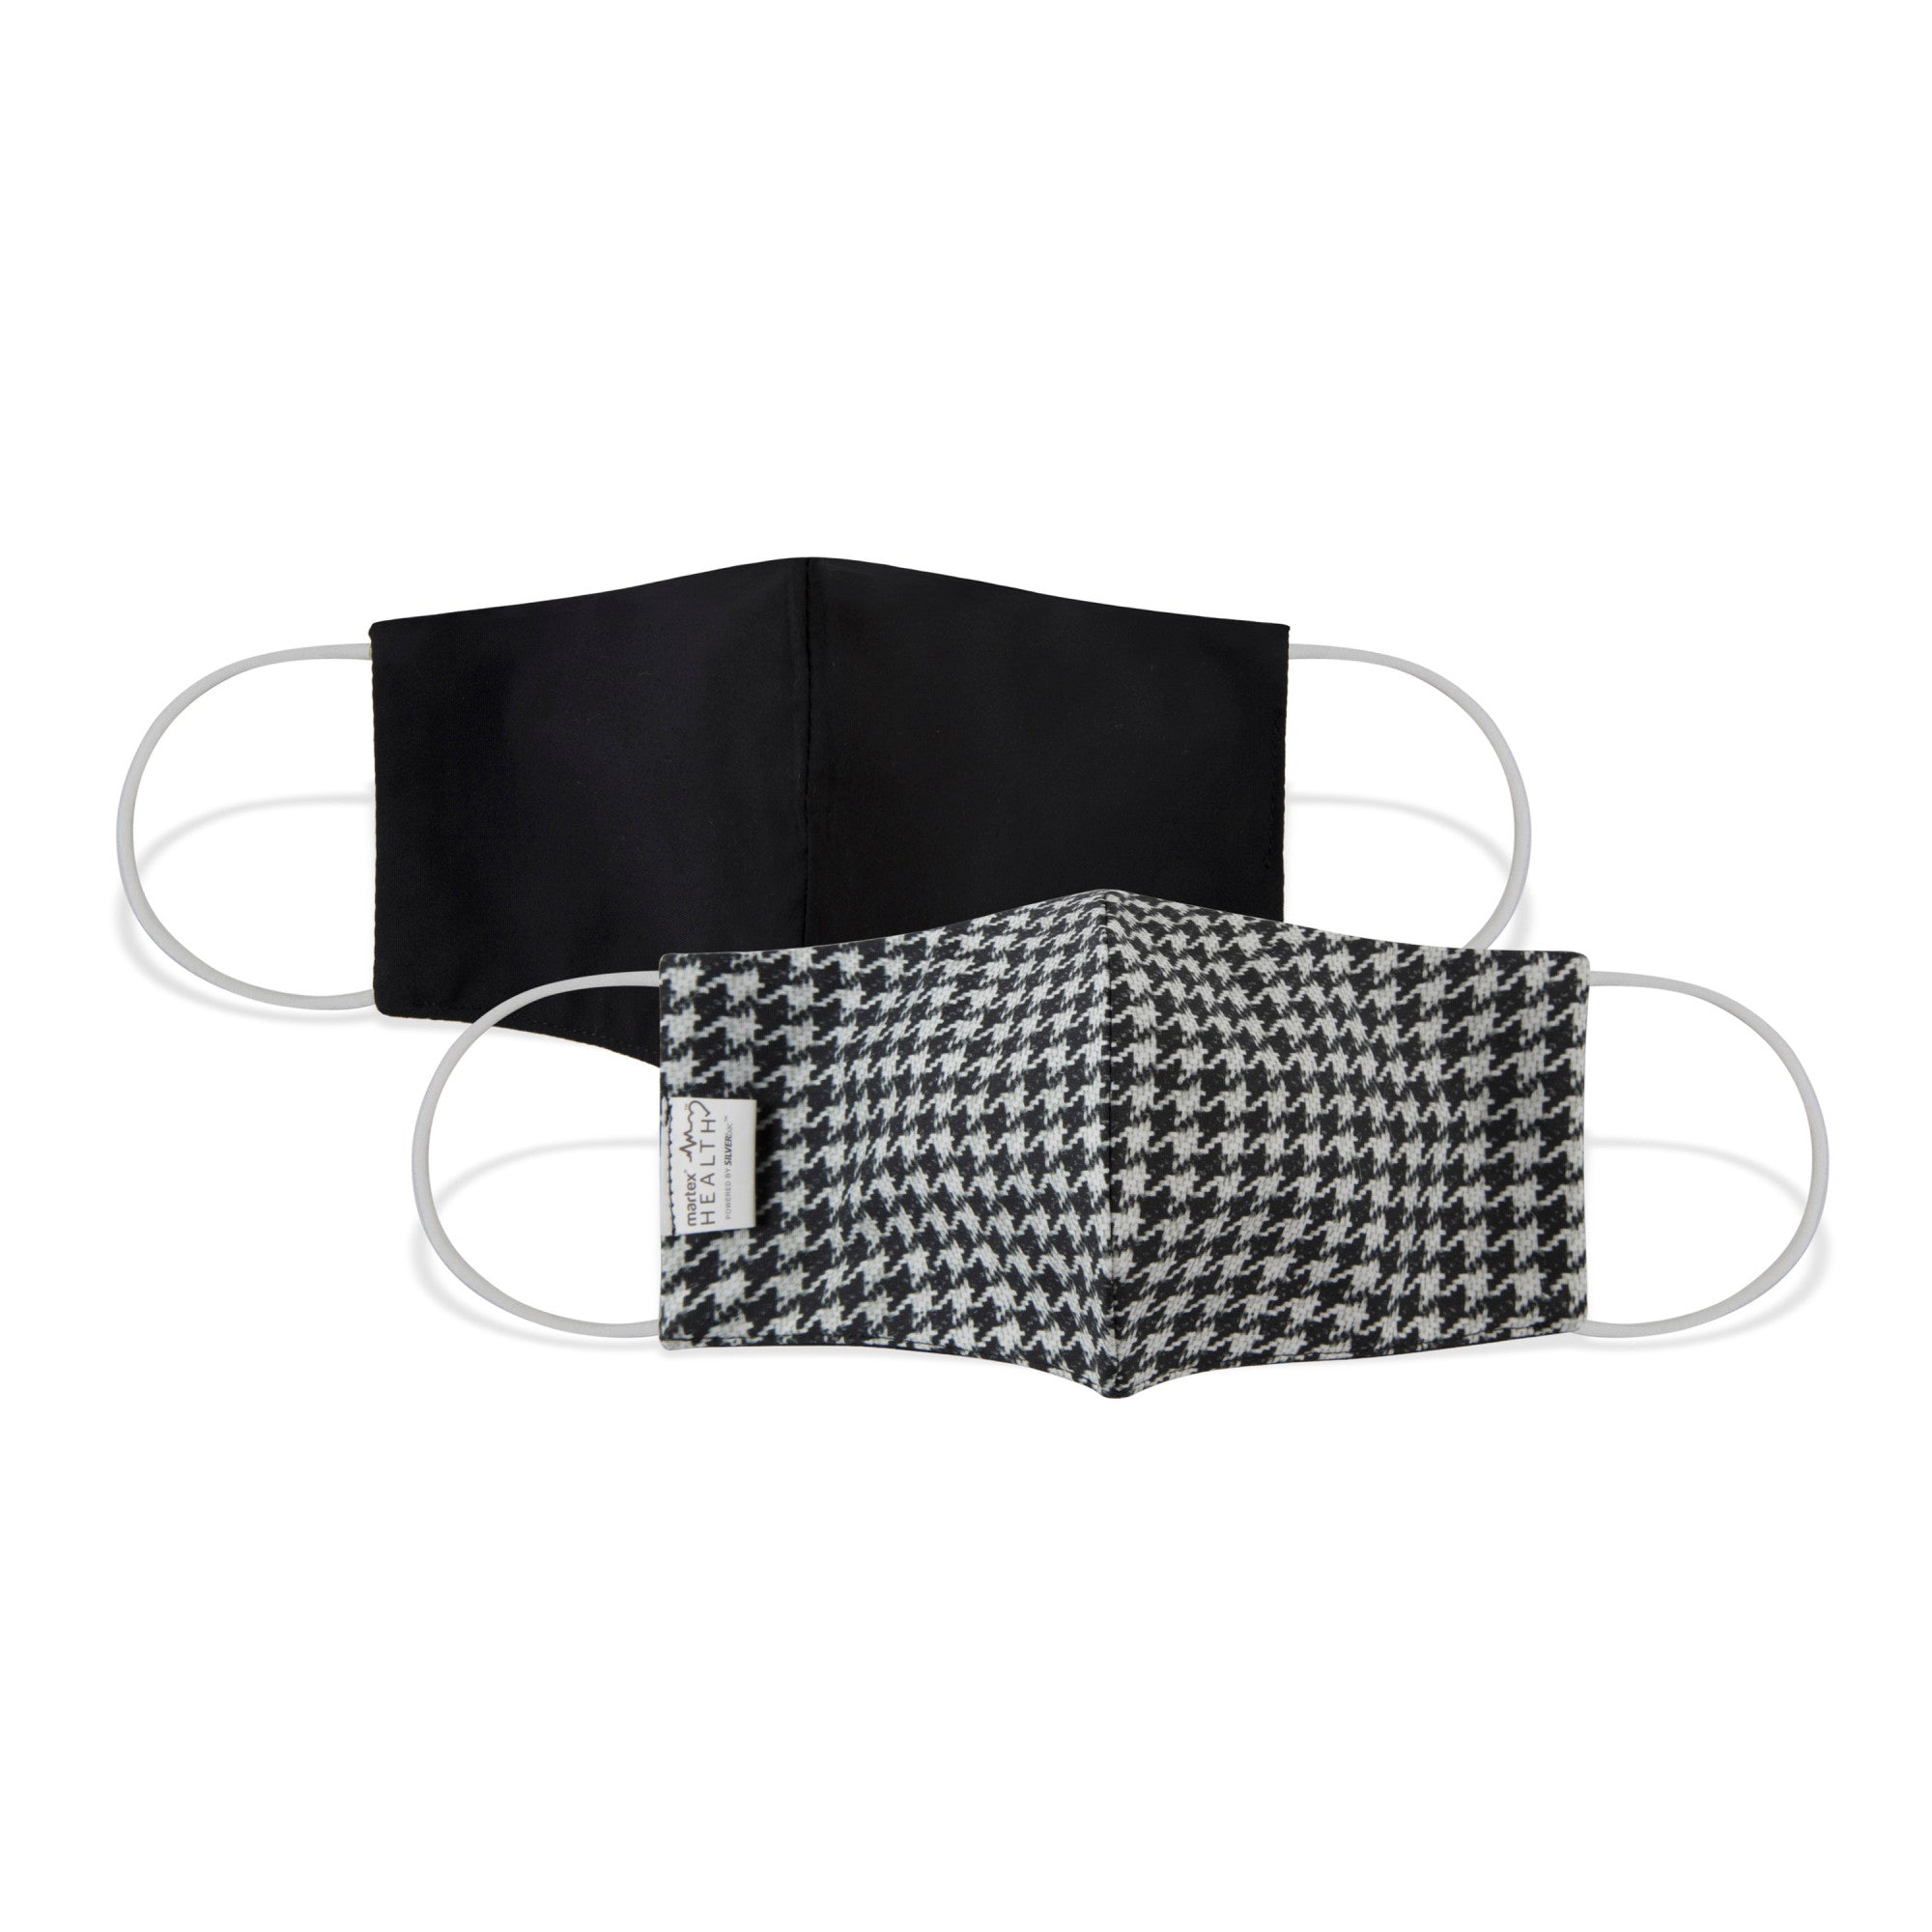 Martex Health Black and White Houndstooth Standard Triple Layer Face Mask with SILVERbac™ Antimicrobial Technology - Single Pack